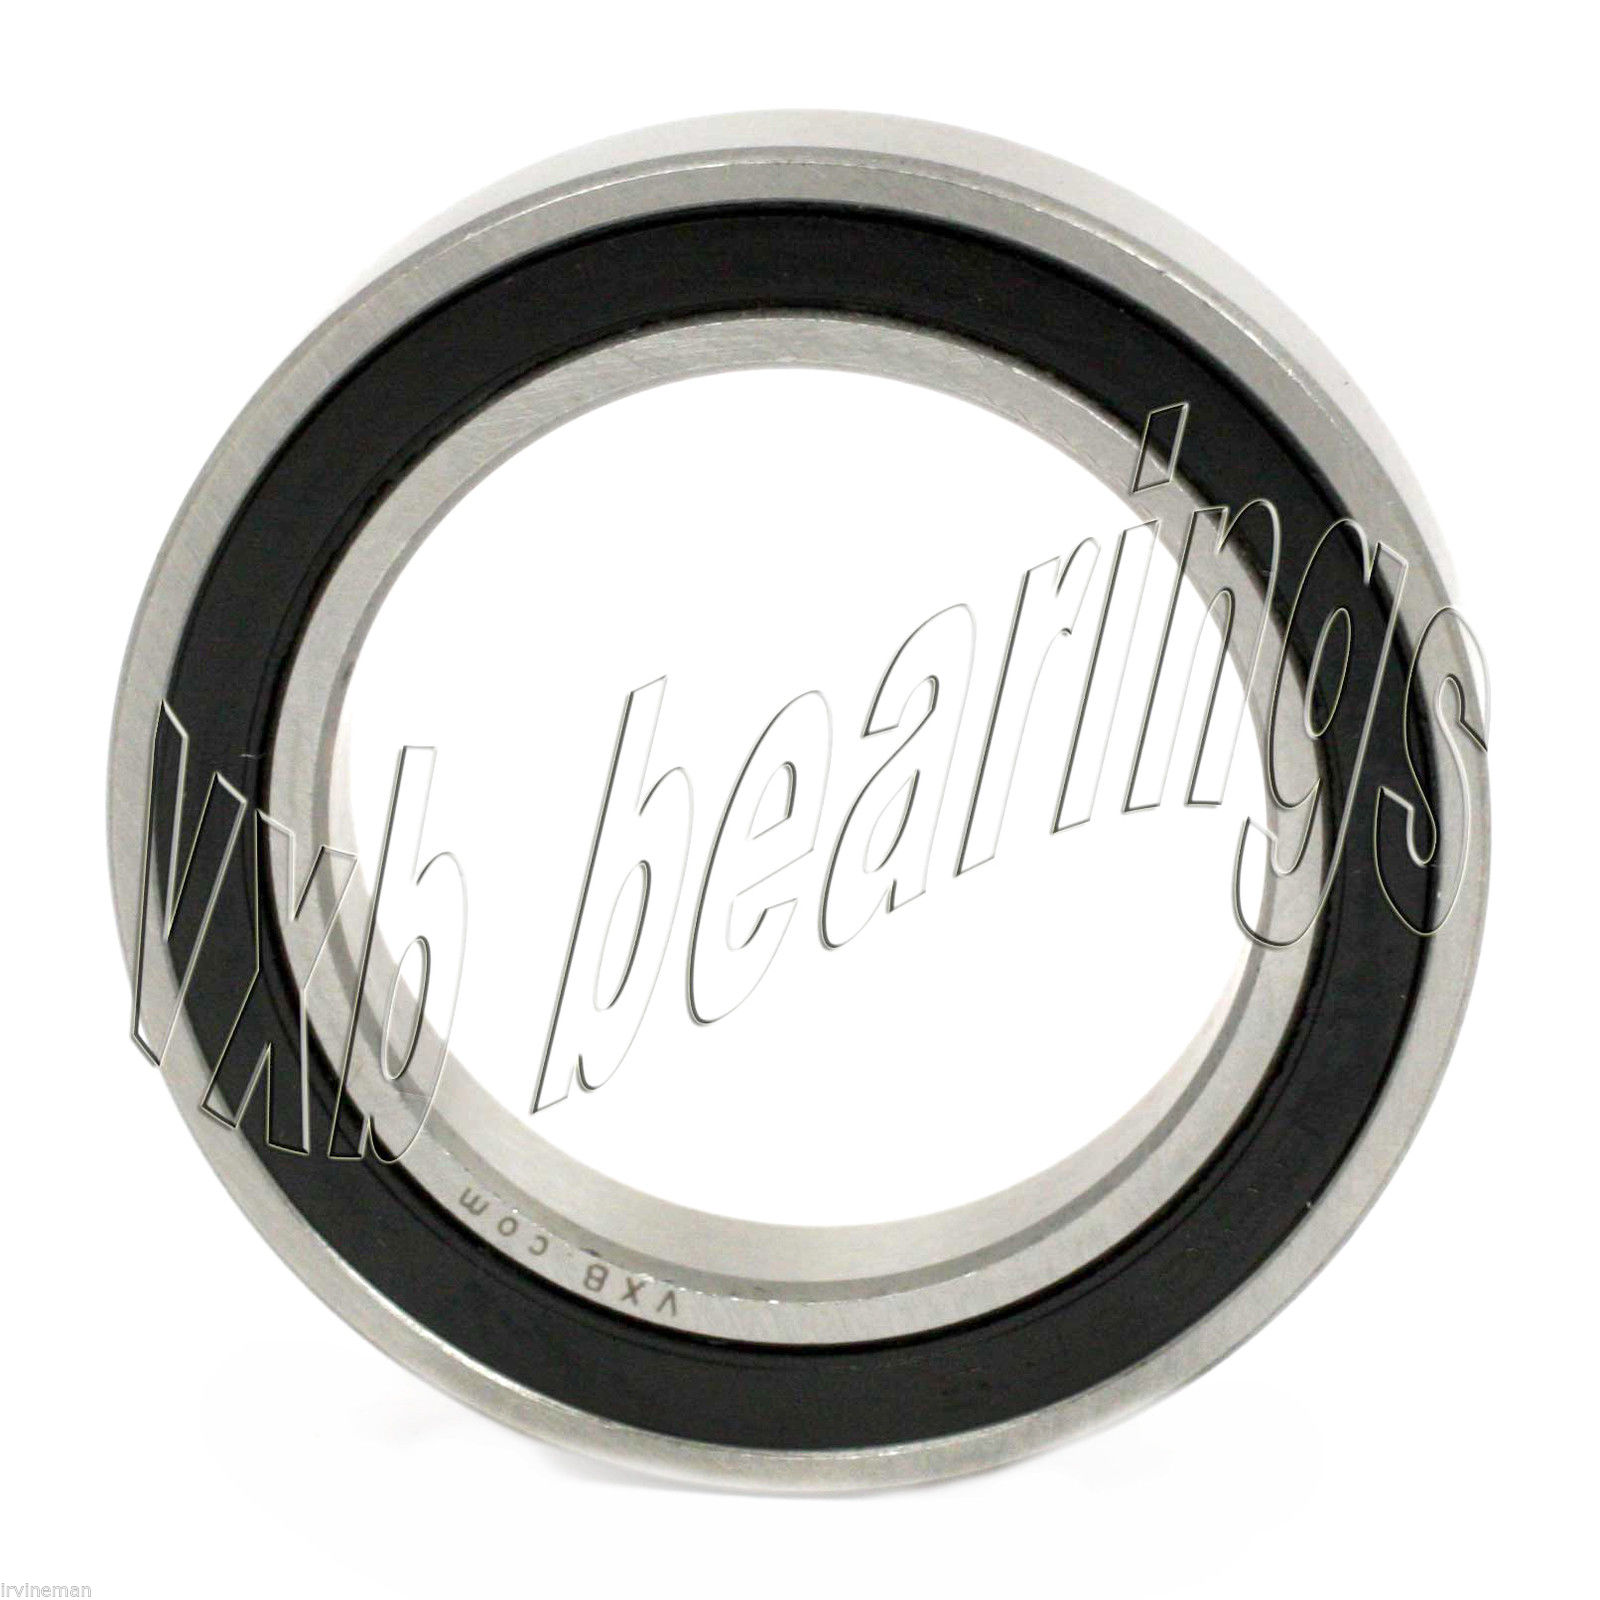 high temperature S6800-2RS Ceramic Stainless ABEC-5 Bearing 10x19x5 Ball Bearings